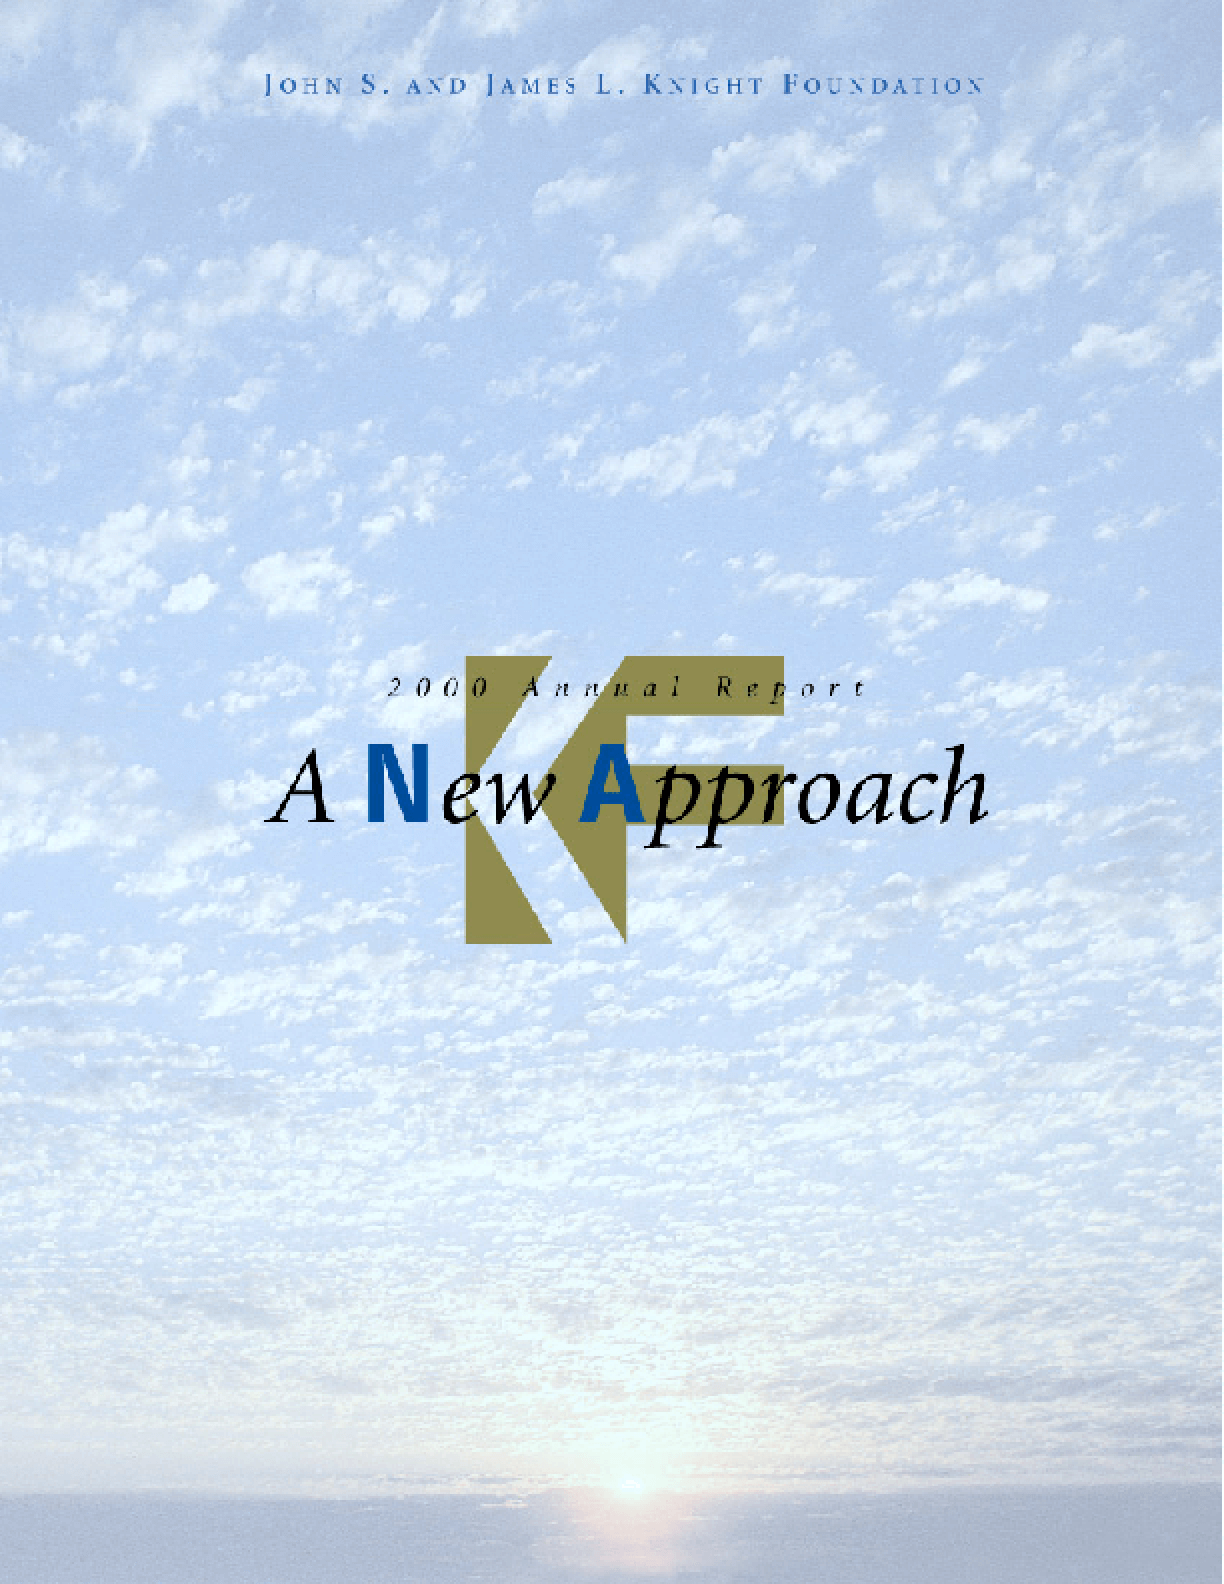 John S. and James L. Knight Foundation - 2000 Annual Report: A New Approach